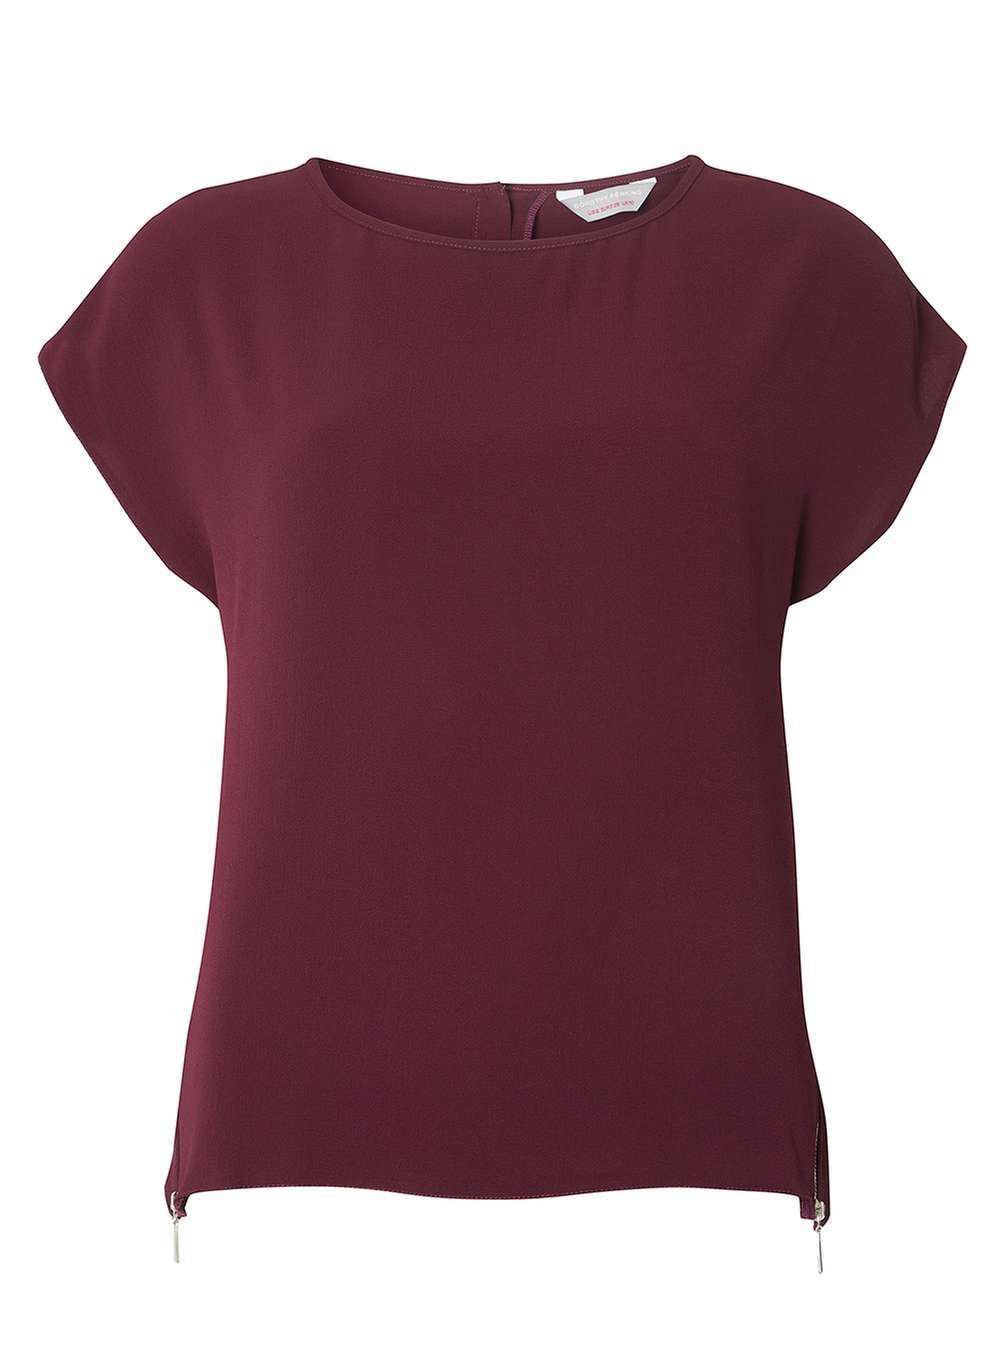 Womens Petite Wine Zip Soft Tee Red - neckline: round neck; sleeve style: capped; pattern: plain; style: t-shirt; predominant colour: burgundy; occasions: casual, work, creative work; length: standard; fibres: polyester/polyamide - stretch; fit: body skimming; sleeve length: short sleeve; pattern type: fabric; texture group: jersey - stretchy/drapey; season: a/w 2016; wardrobe: highlight